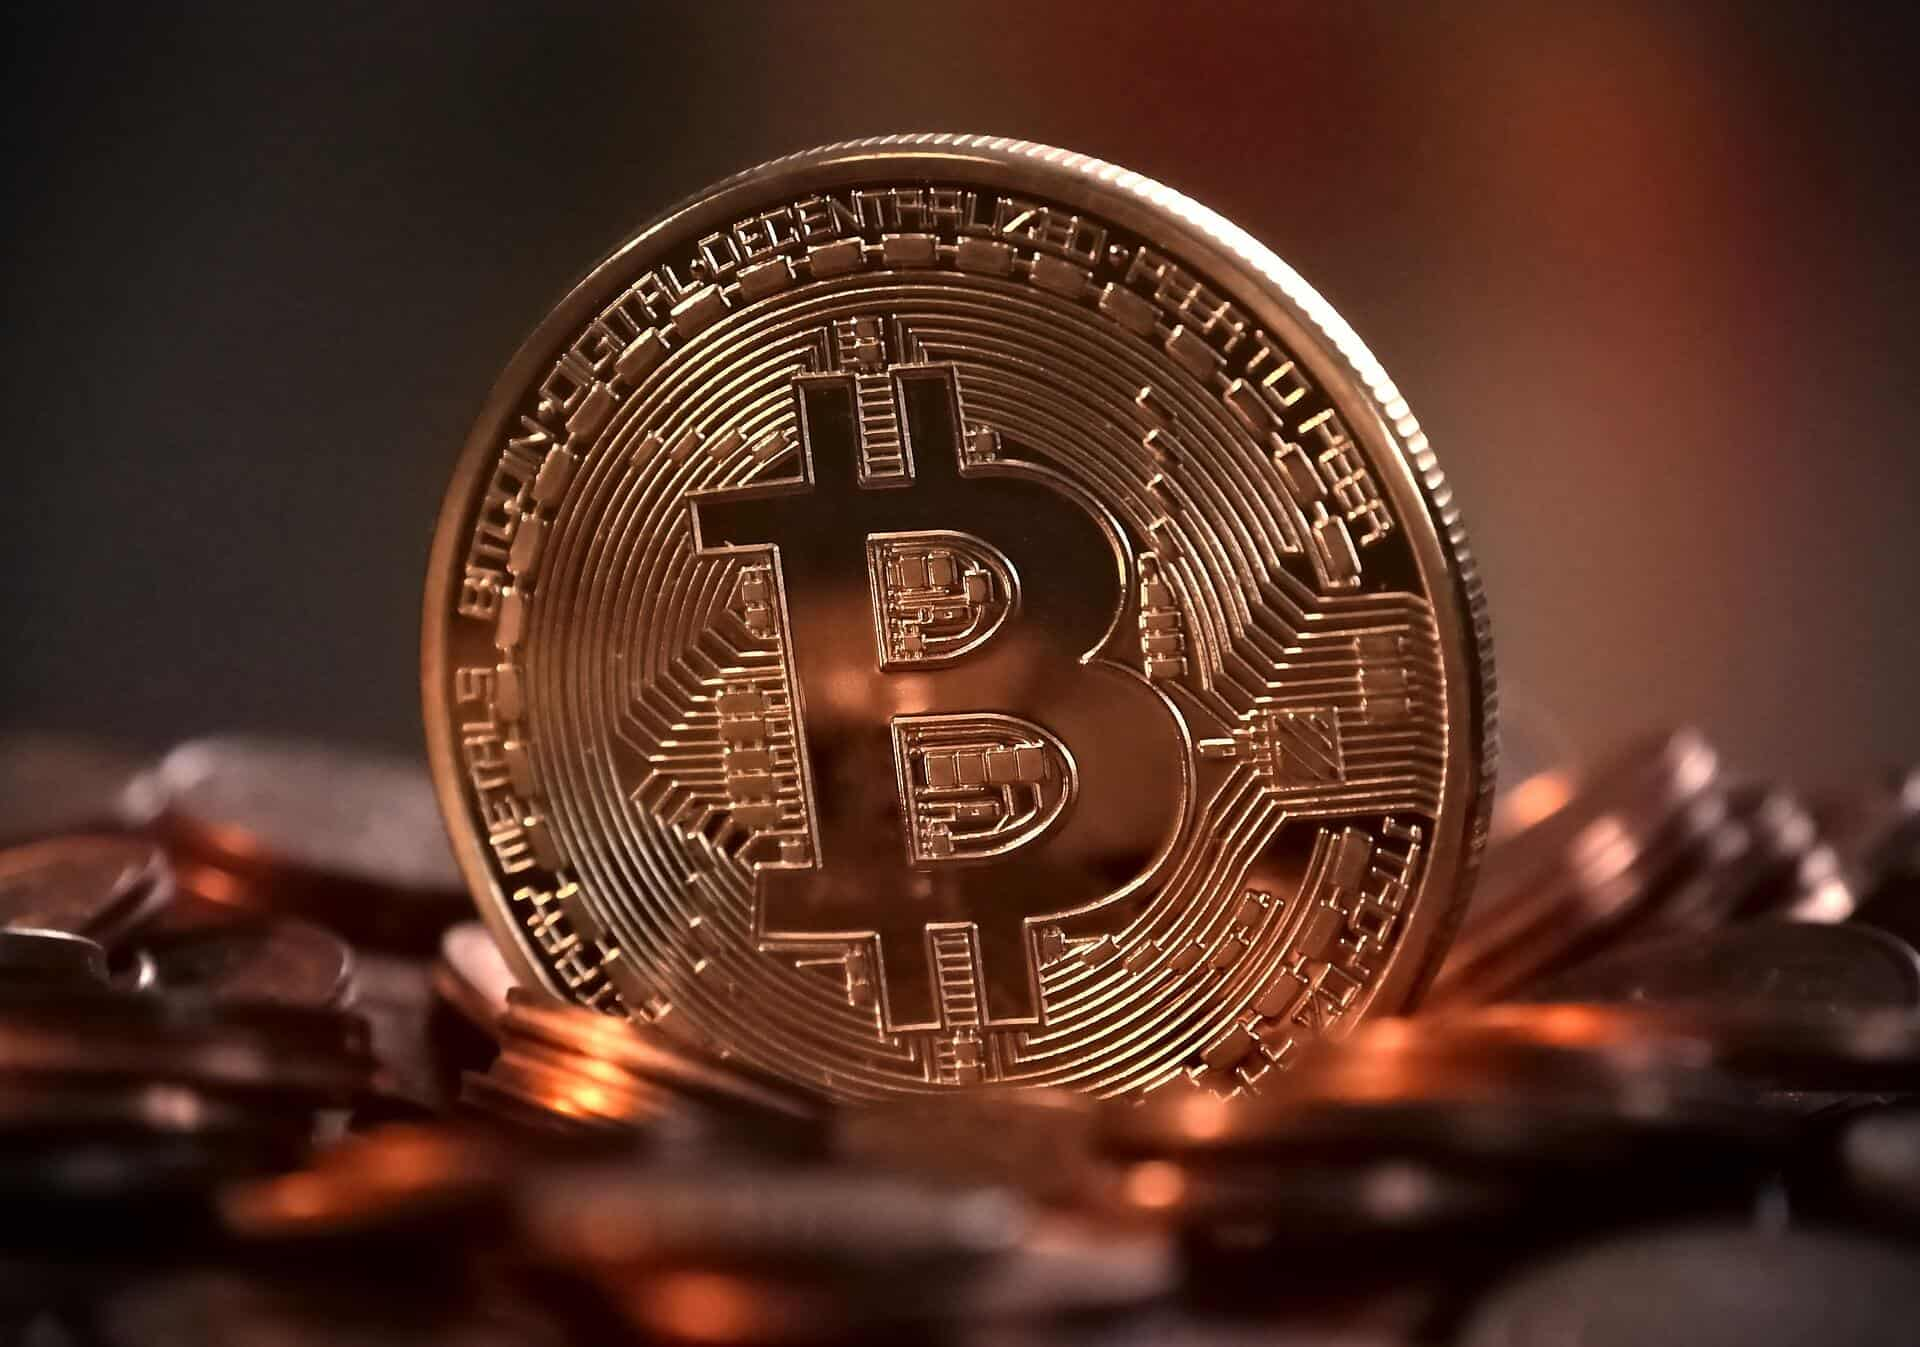 Security Experts Tell Why Bitcoin Is a Game Changer for Cybercrime